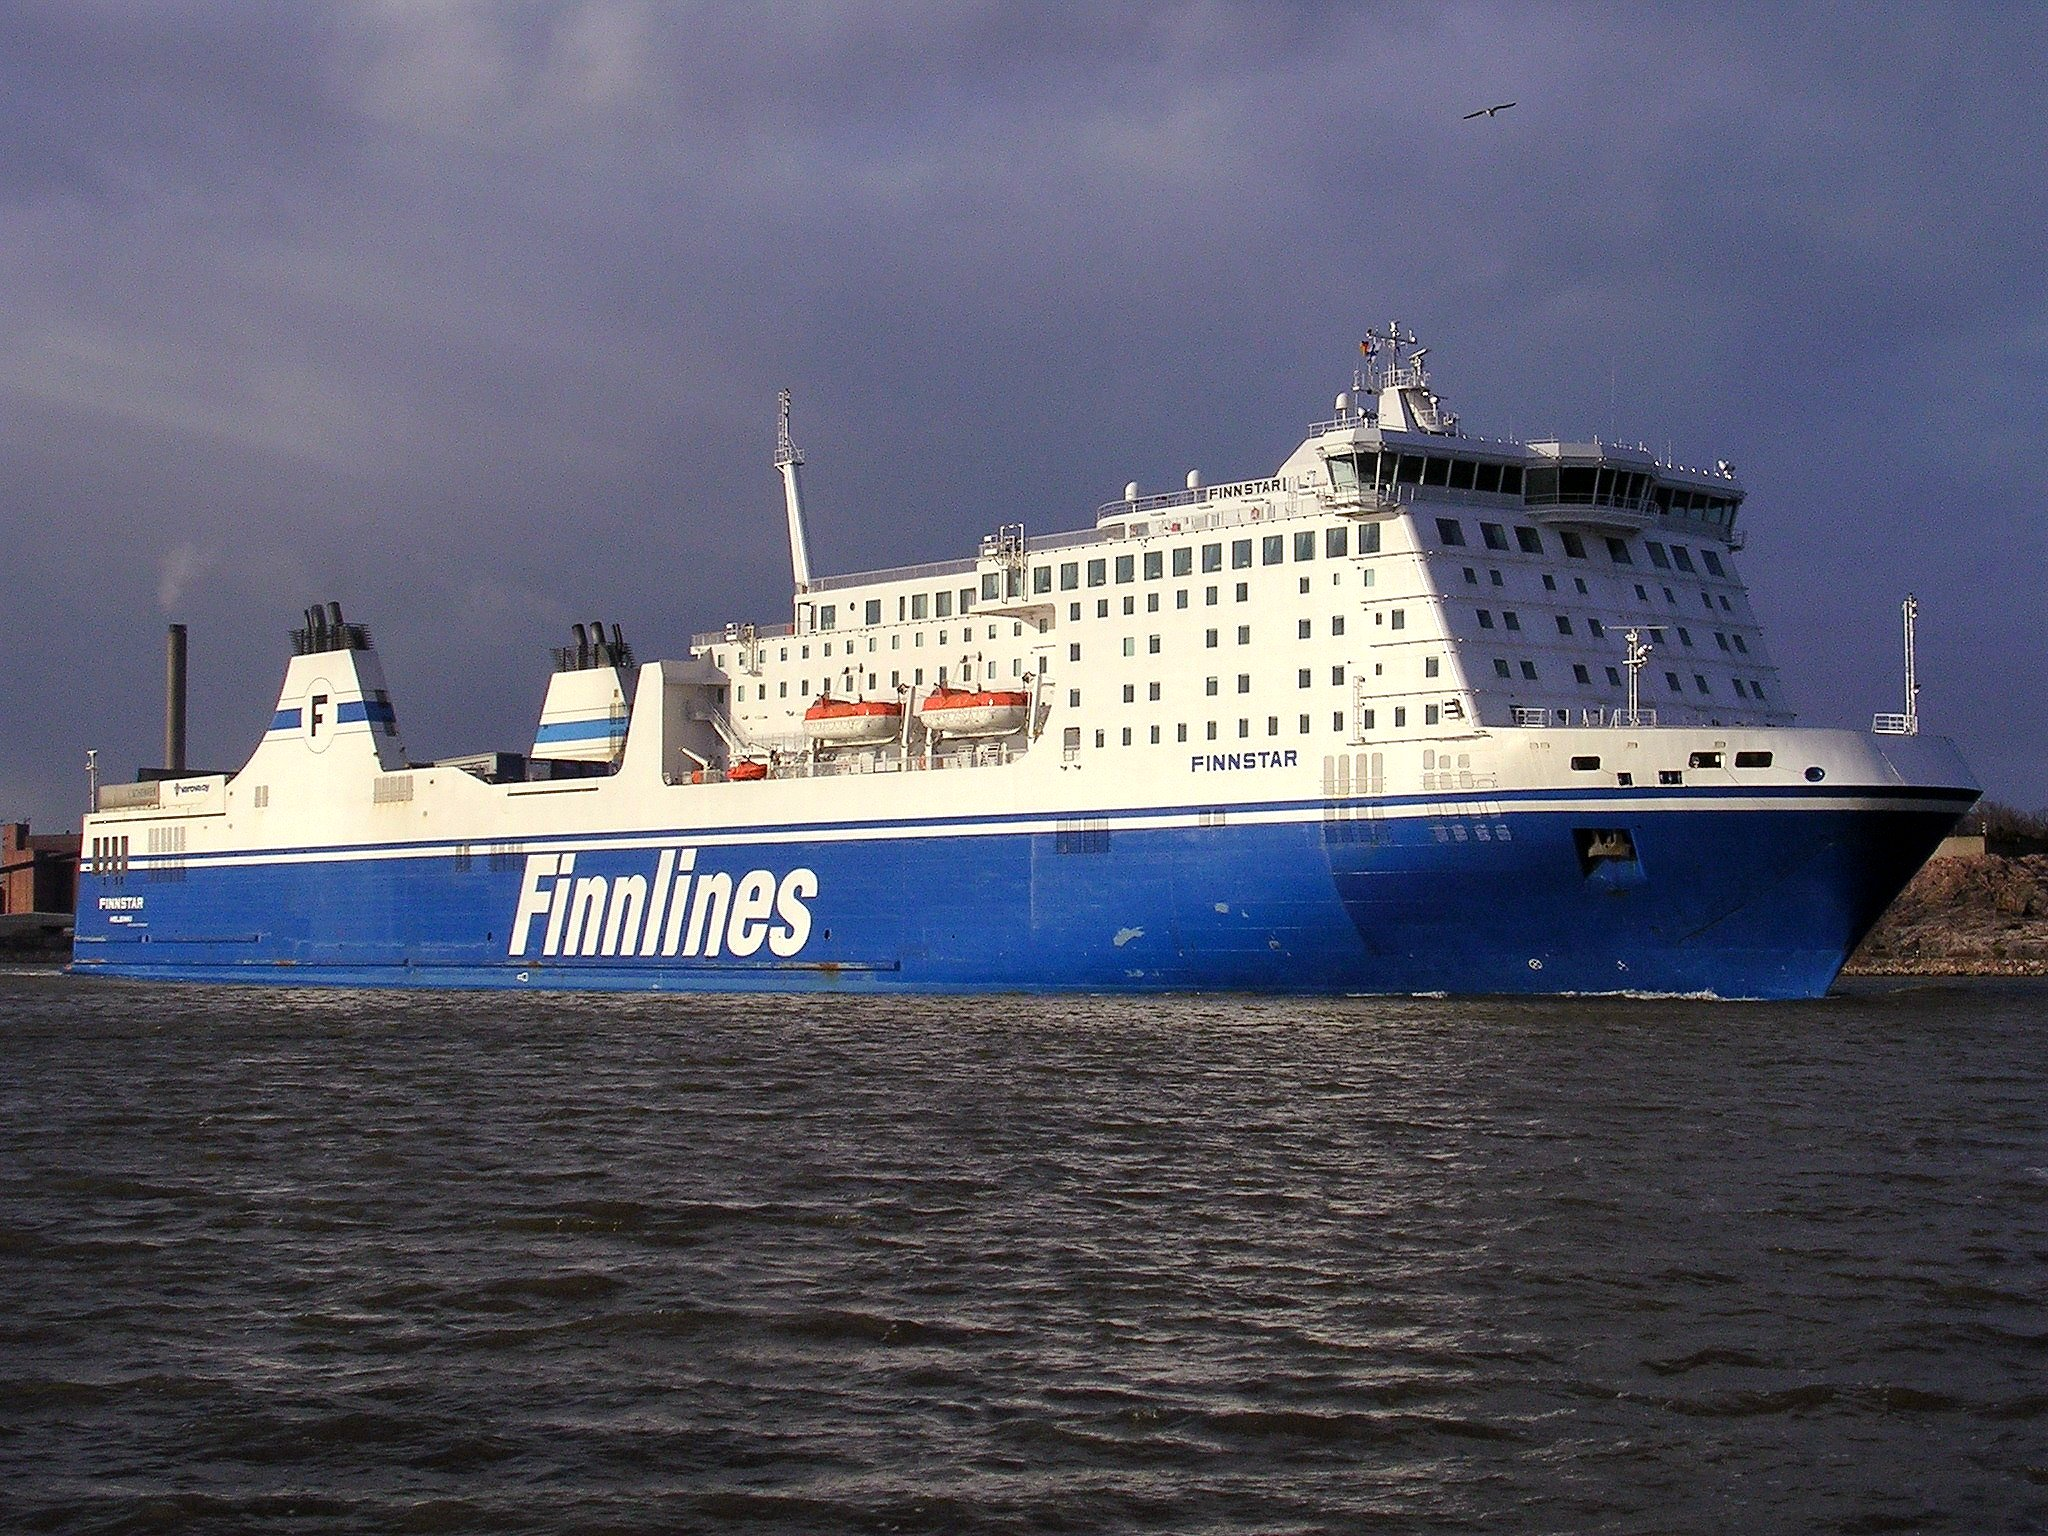 Finnlines announces changes in its management